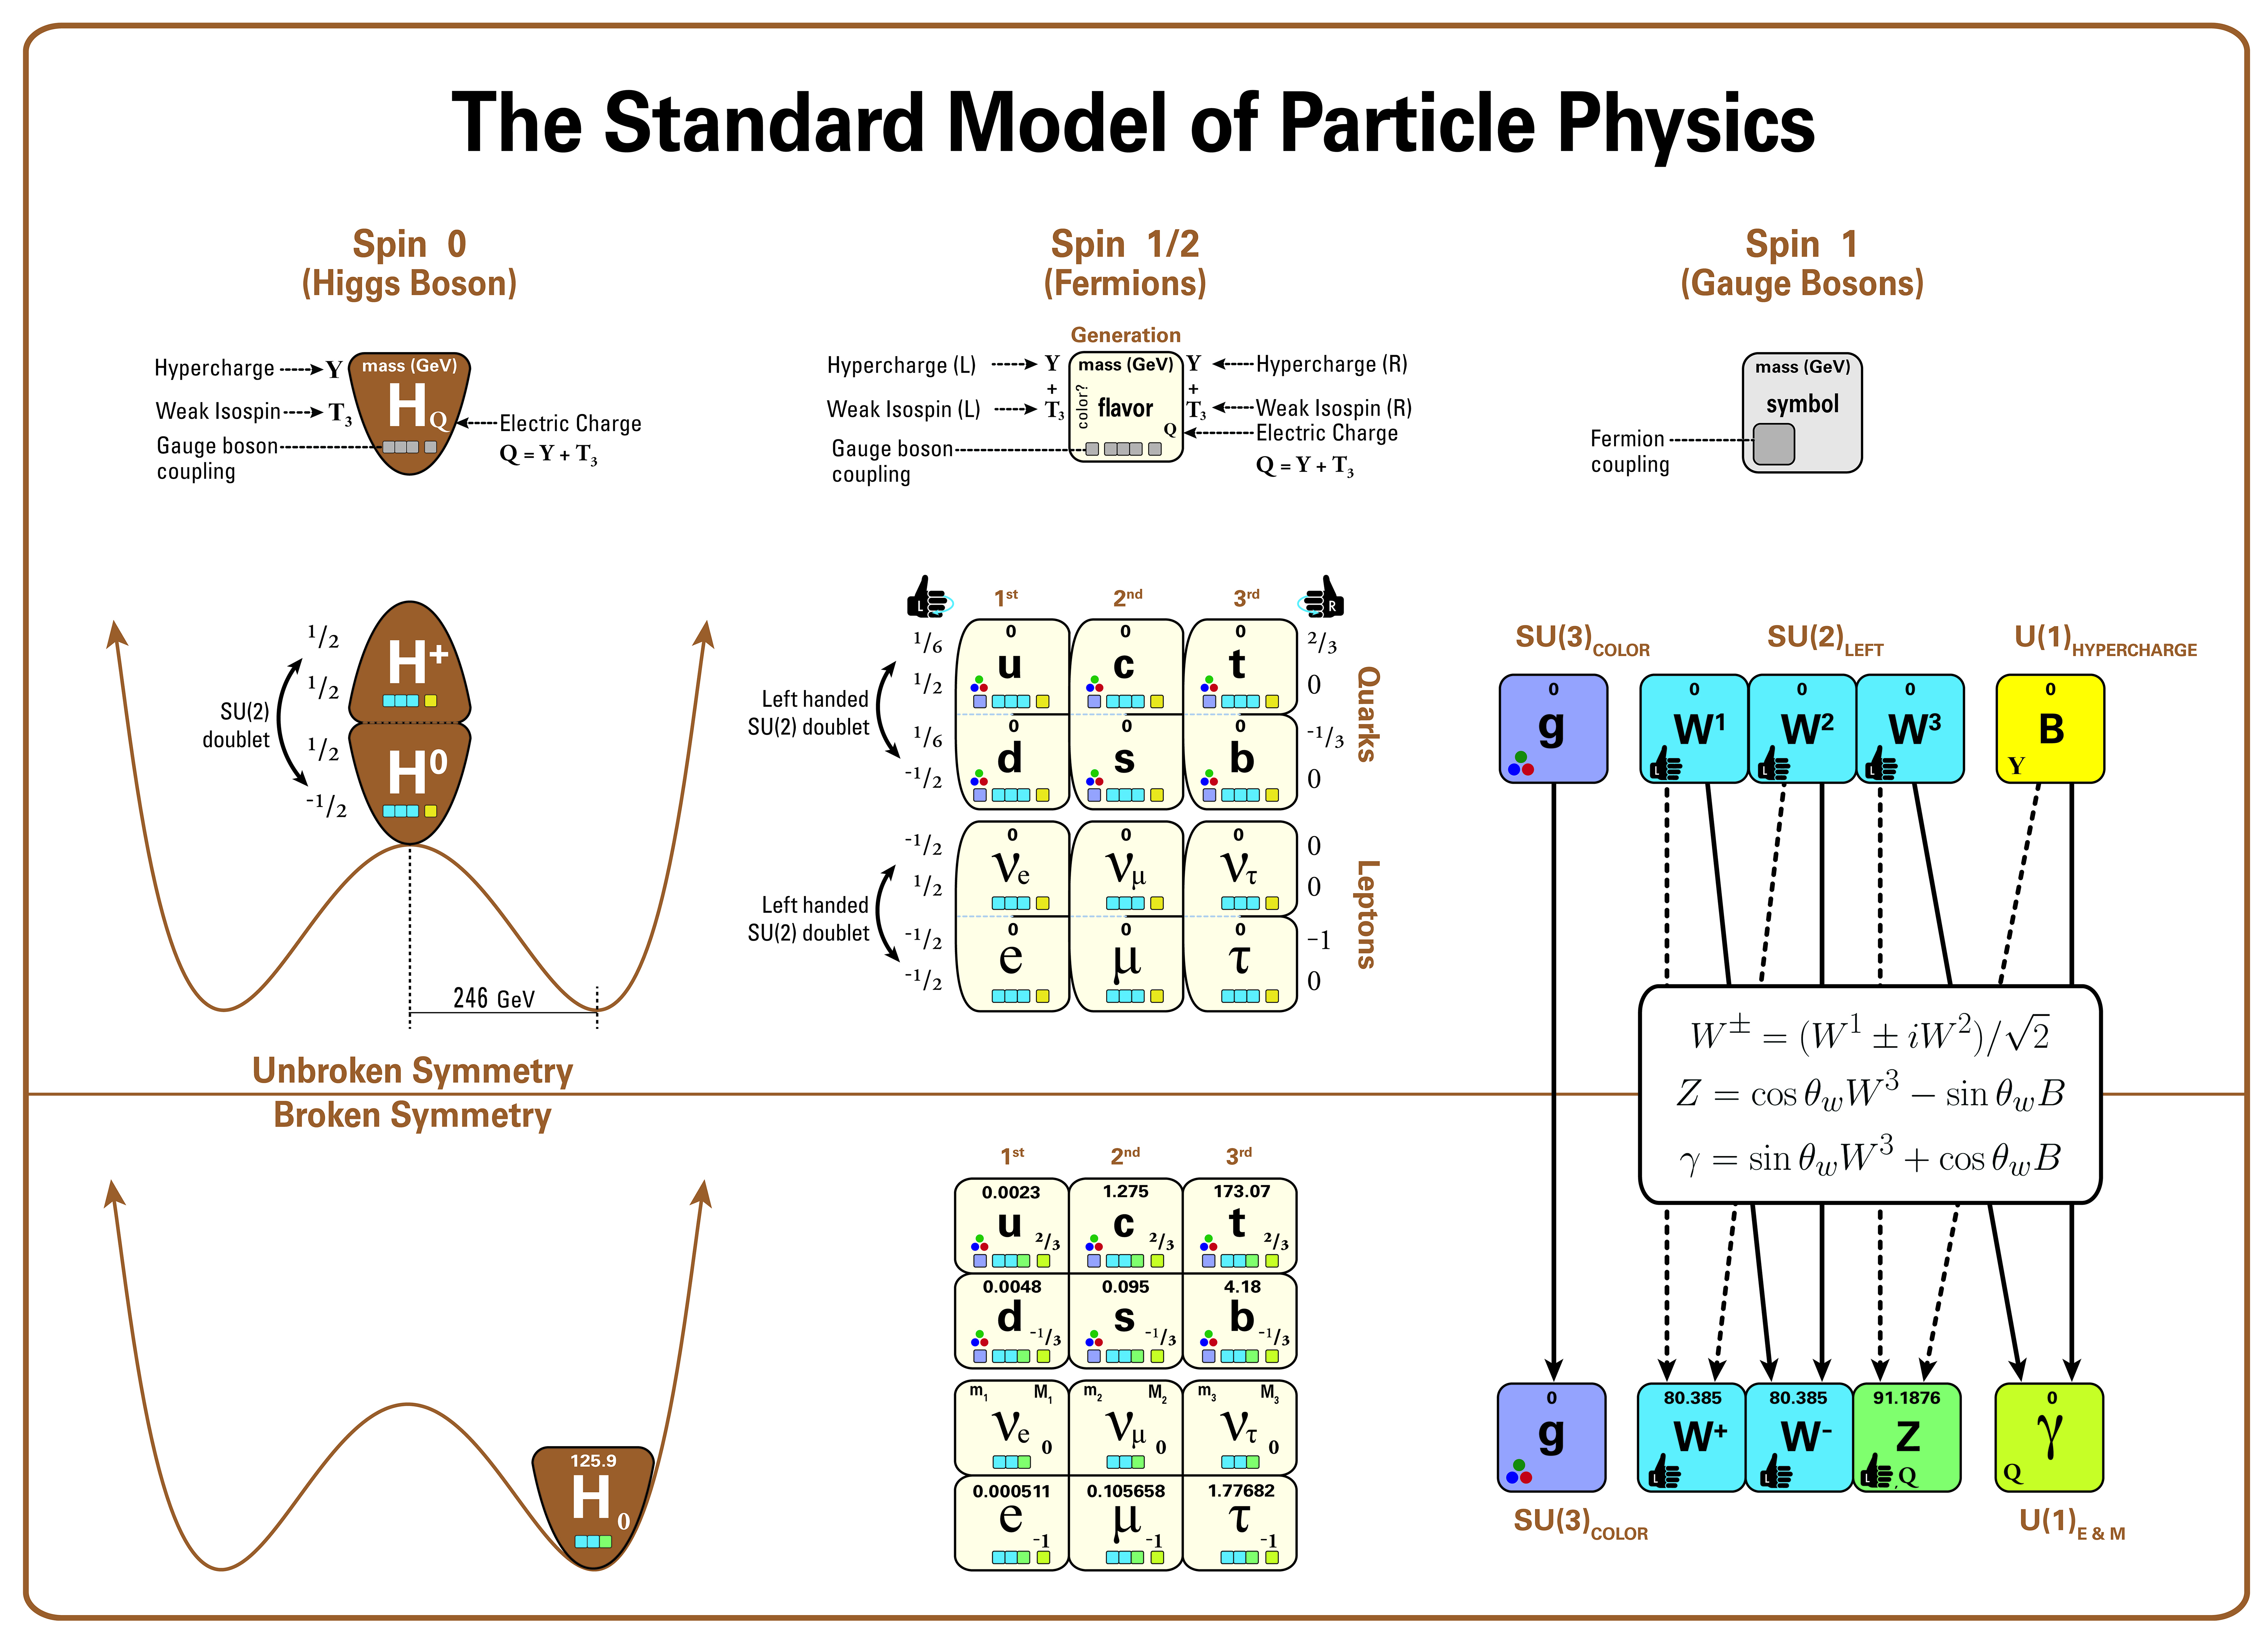 Filestandard model of particle physics most complete diagramg filestandard model of particle physics most complete diagramg pooptronica Images